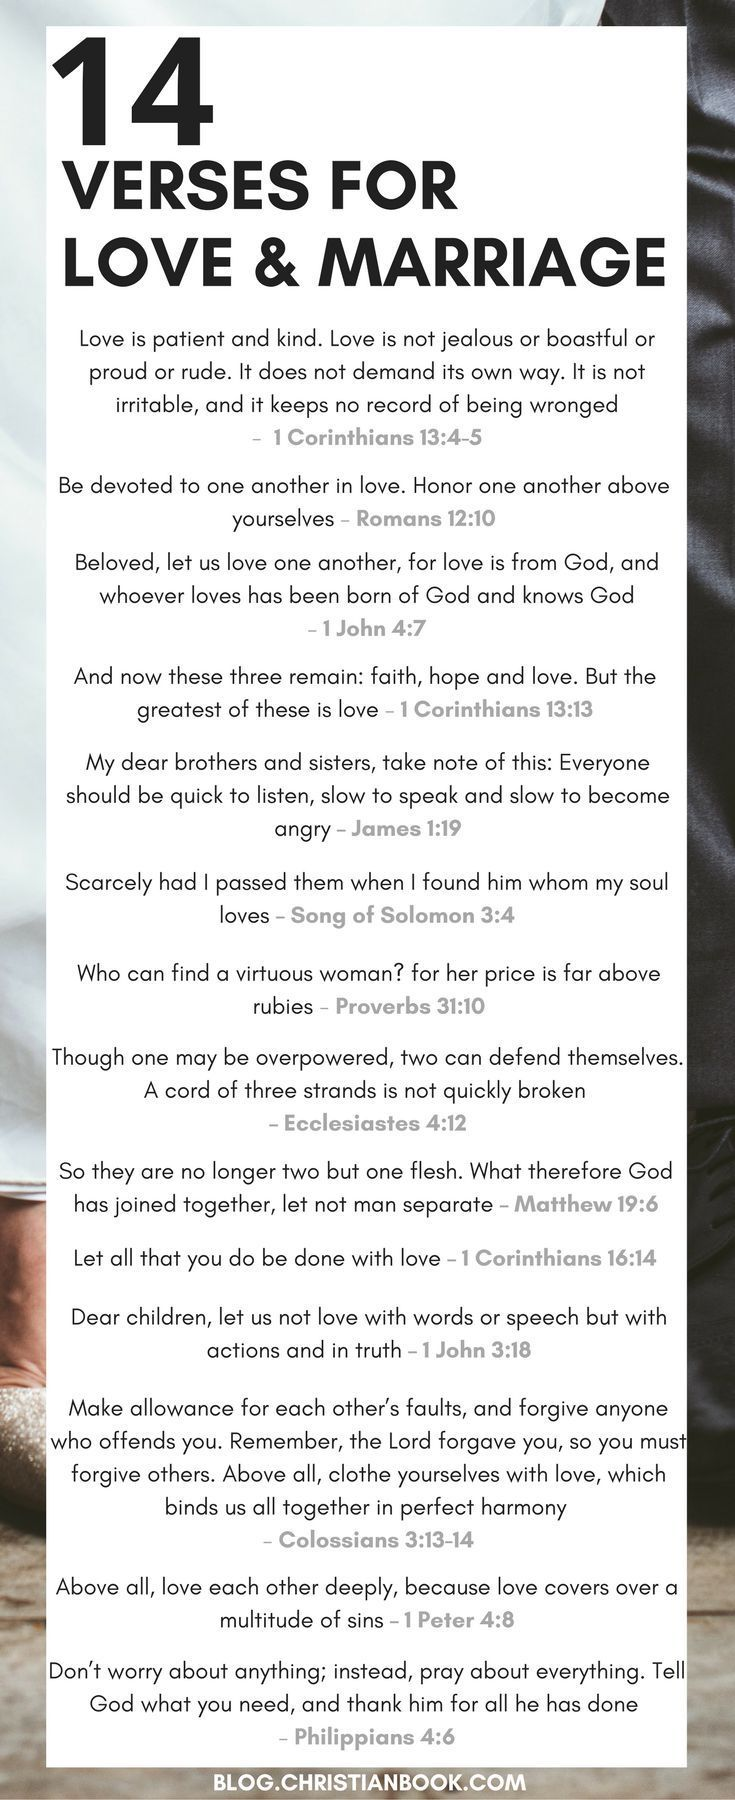 Whether you're recently engaged or soon to be celebrating a milestone wedding anniversary, here are some of the most valuable Bible verses about relationships, marriage and love.